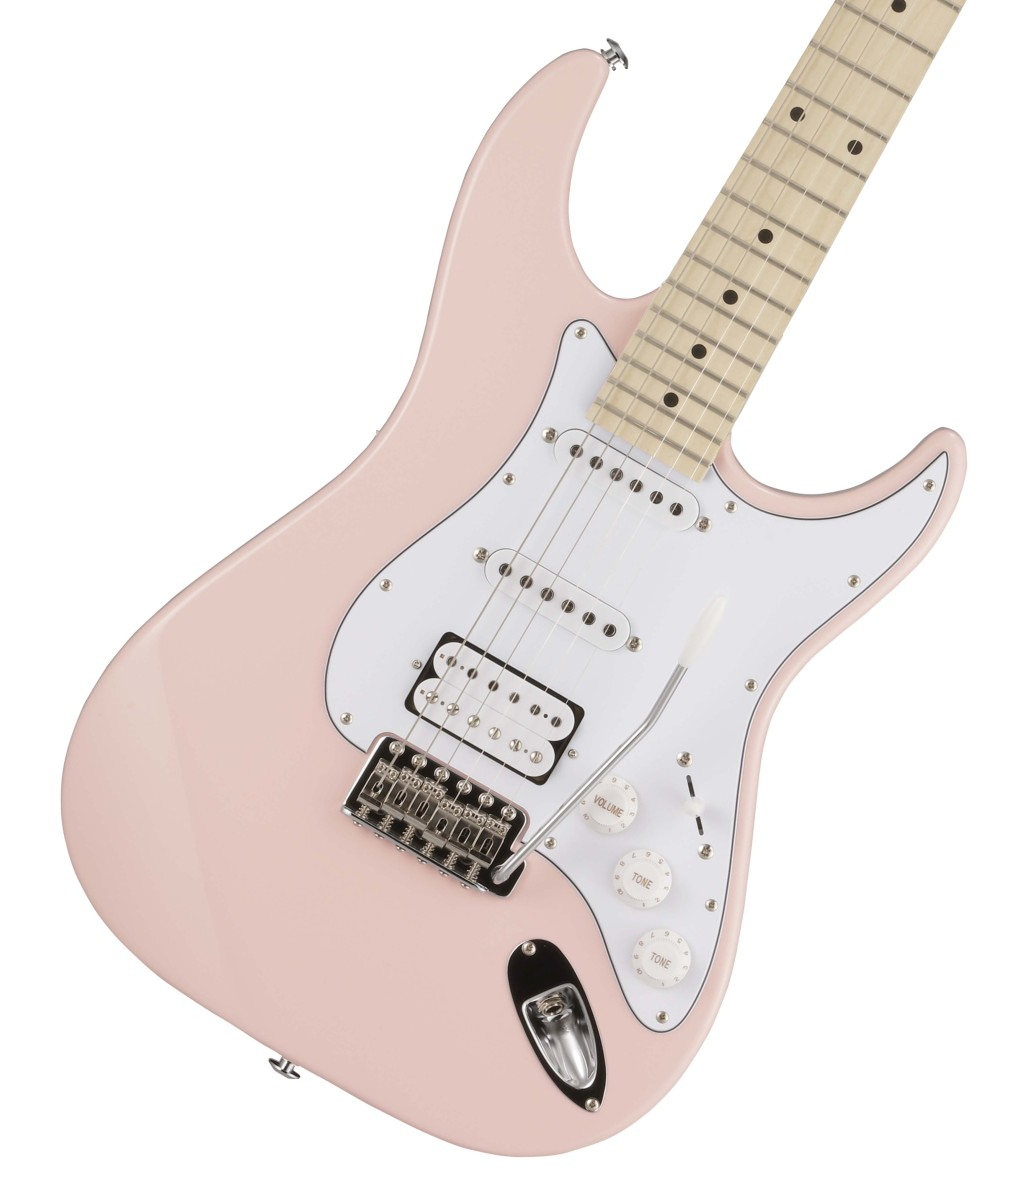 Greco / WS-STD SSH Light Pink (LPK) Maple Fingerboard グレコ【お取り寄せ商品】